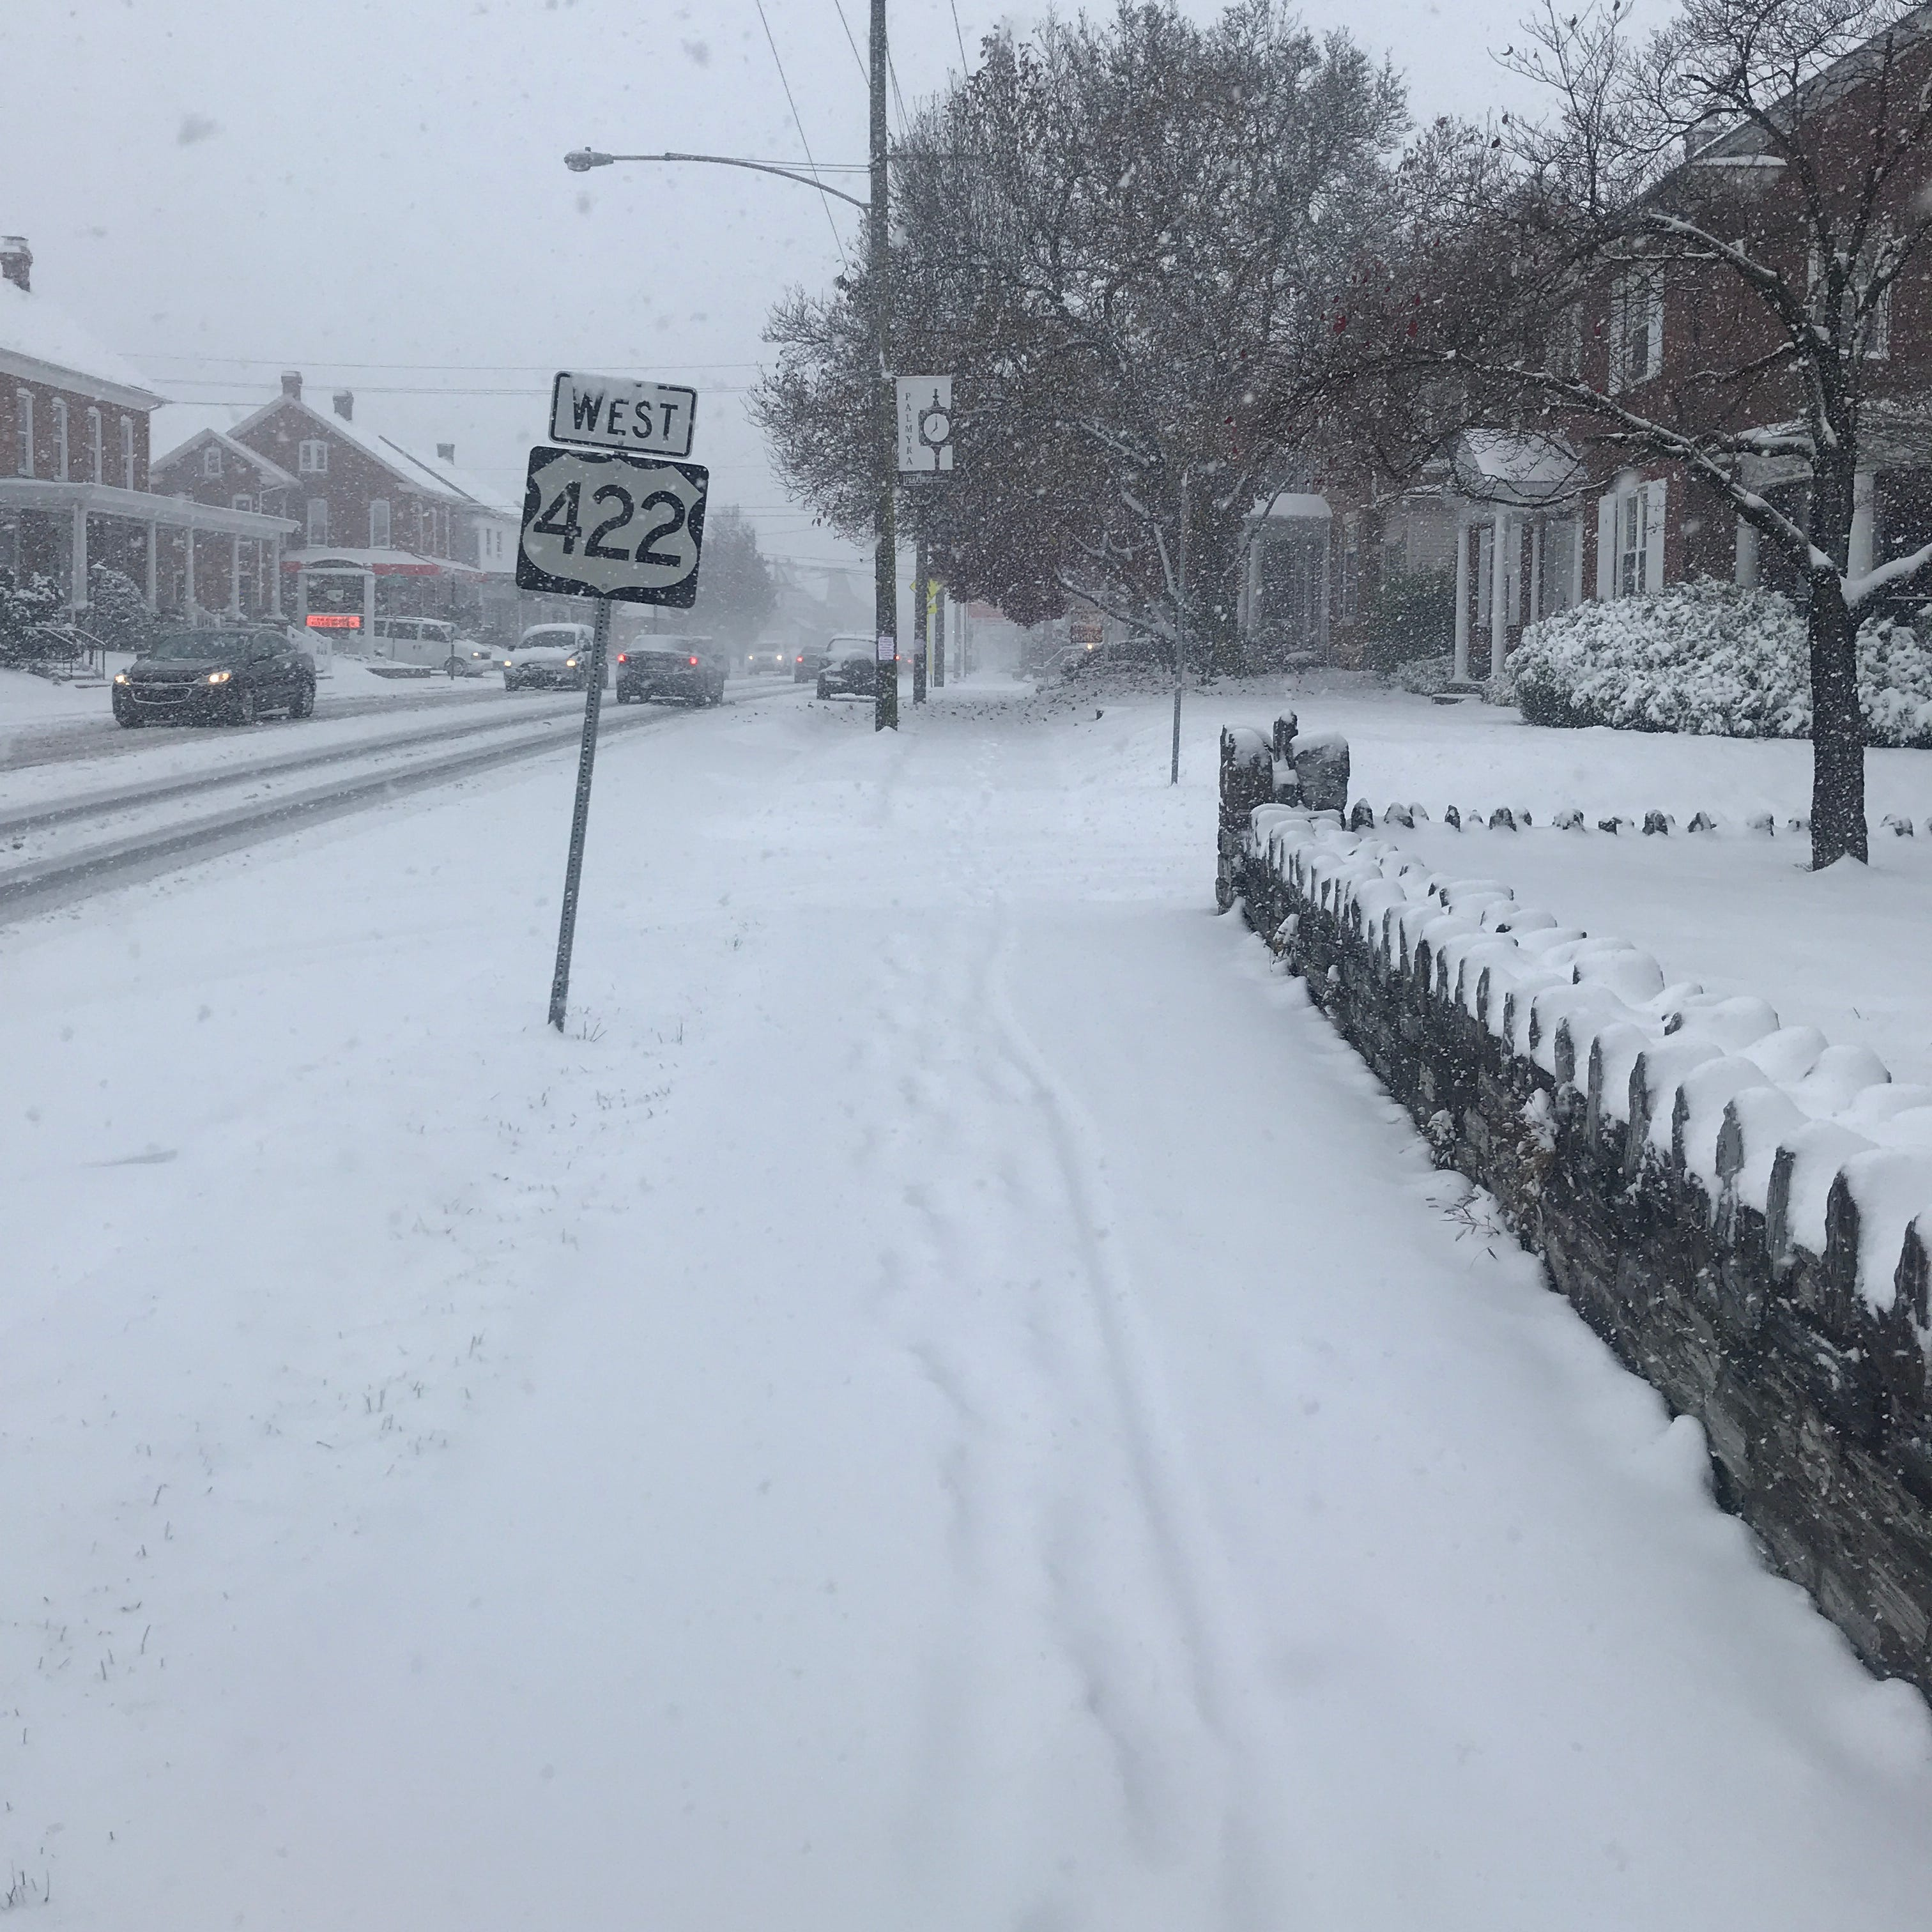 Updated: Lebanon gets 6 inches of snow, causing numerous crashes, slick roads and closings